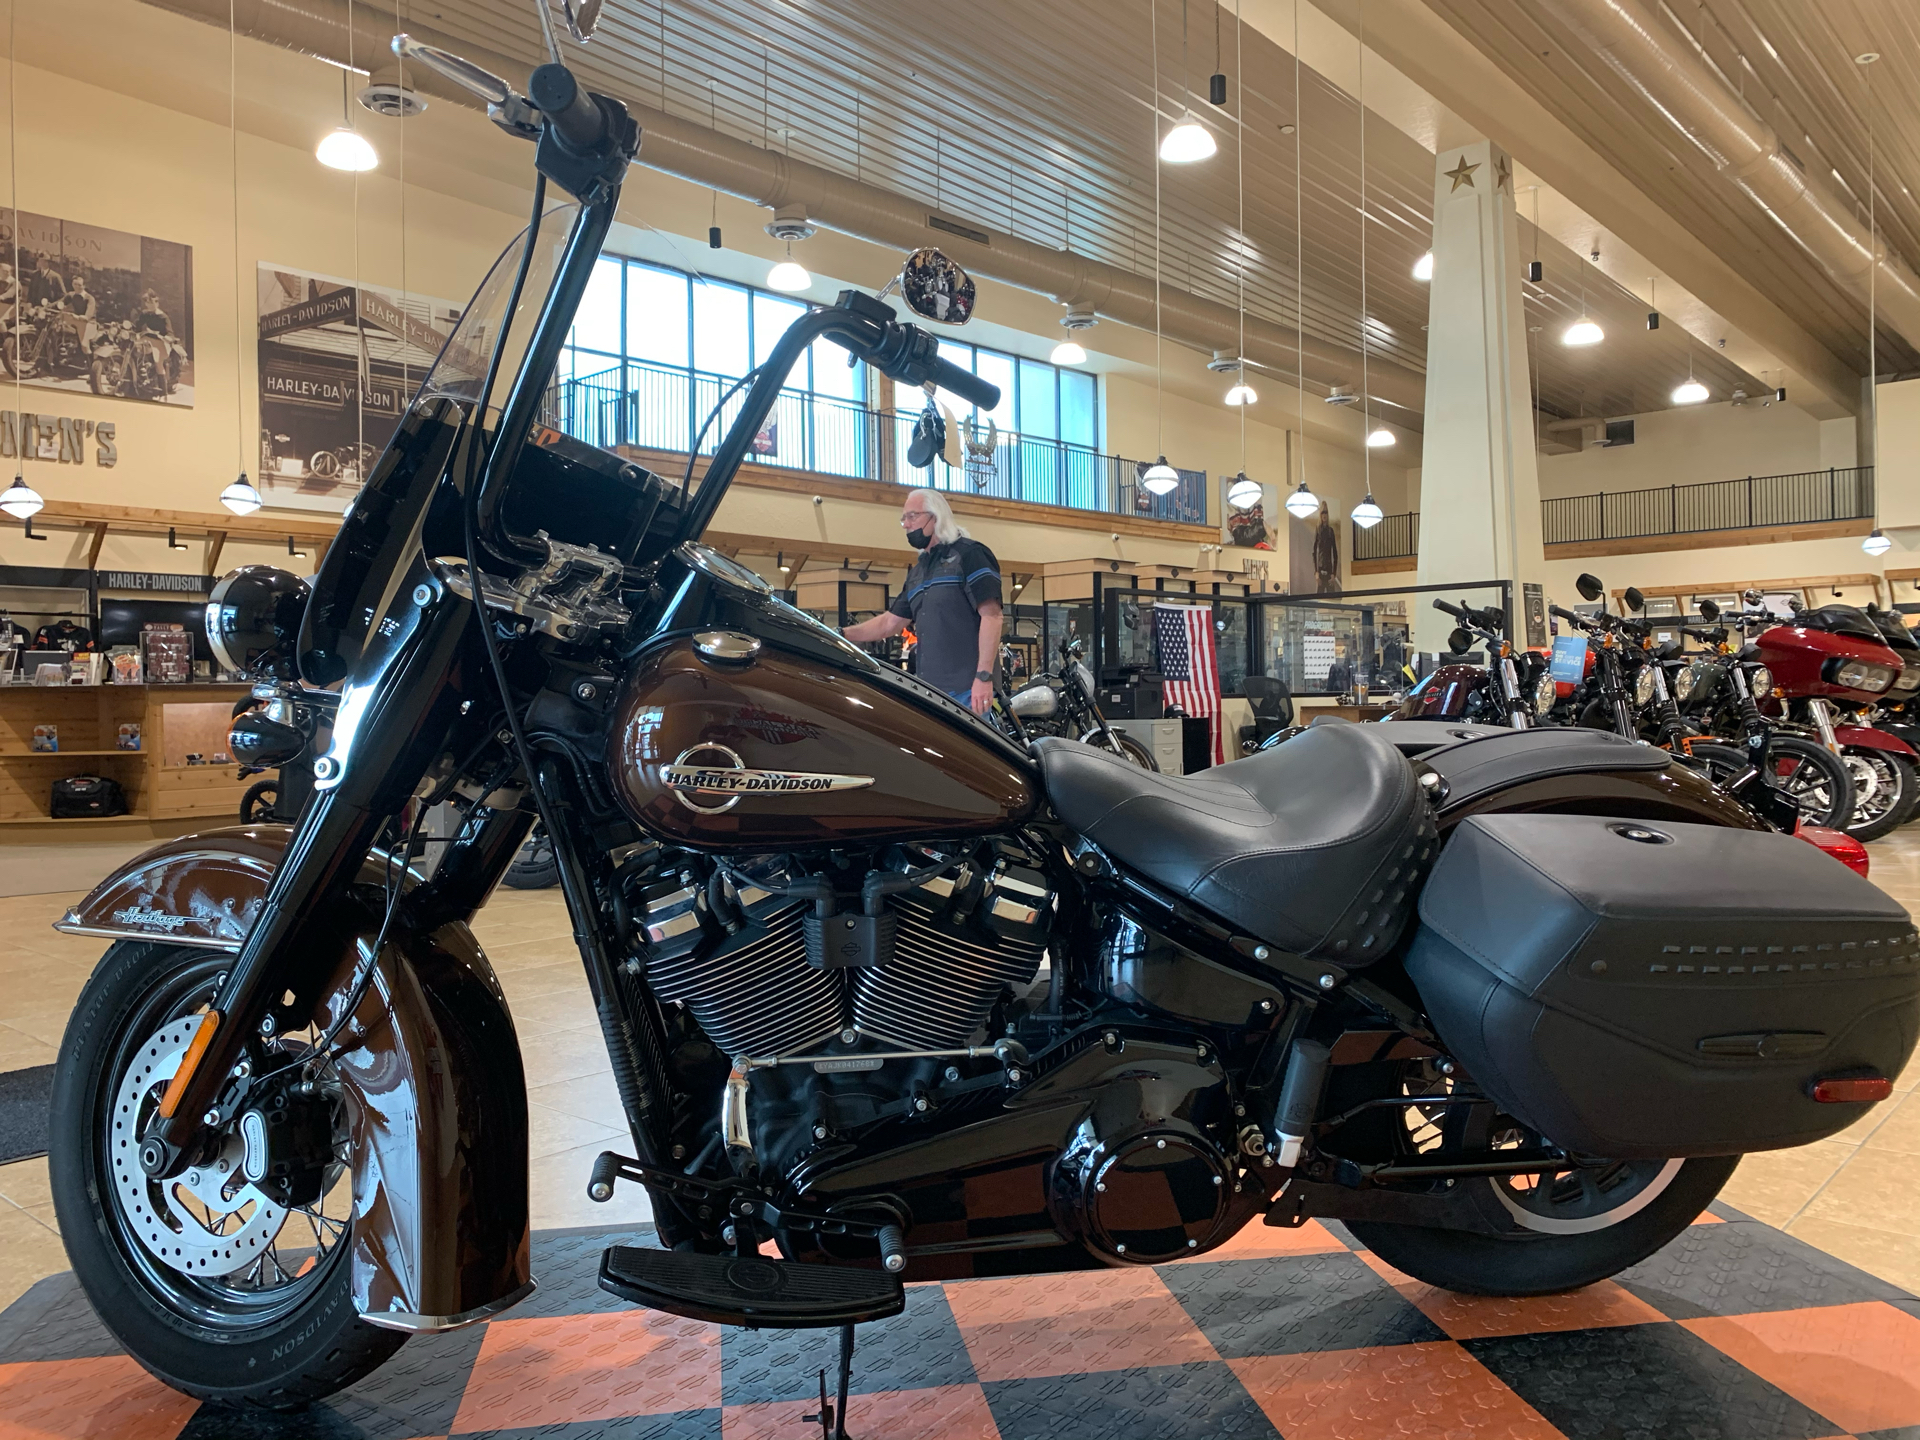 2019 Harley-Davidson Heritage Classic 107 in Pasadena, Texas - Photo 4